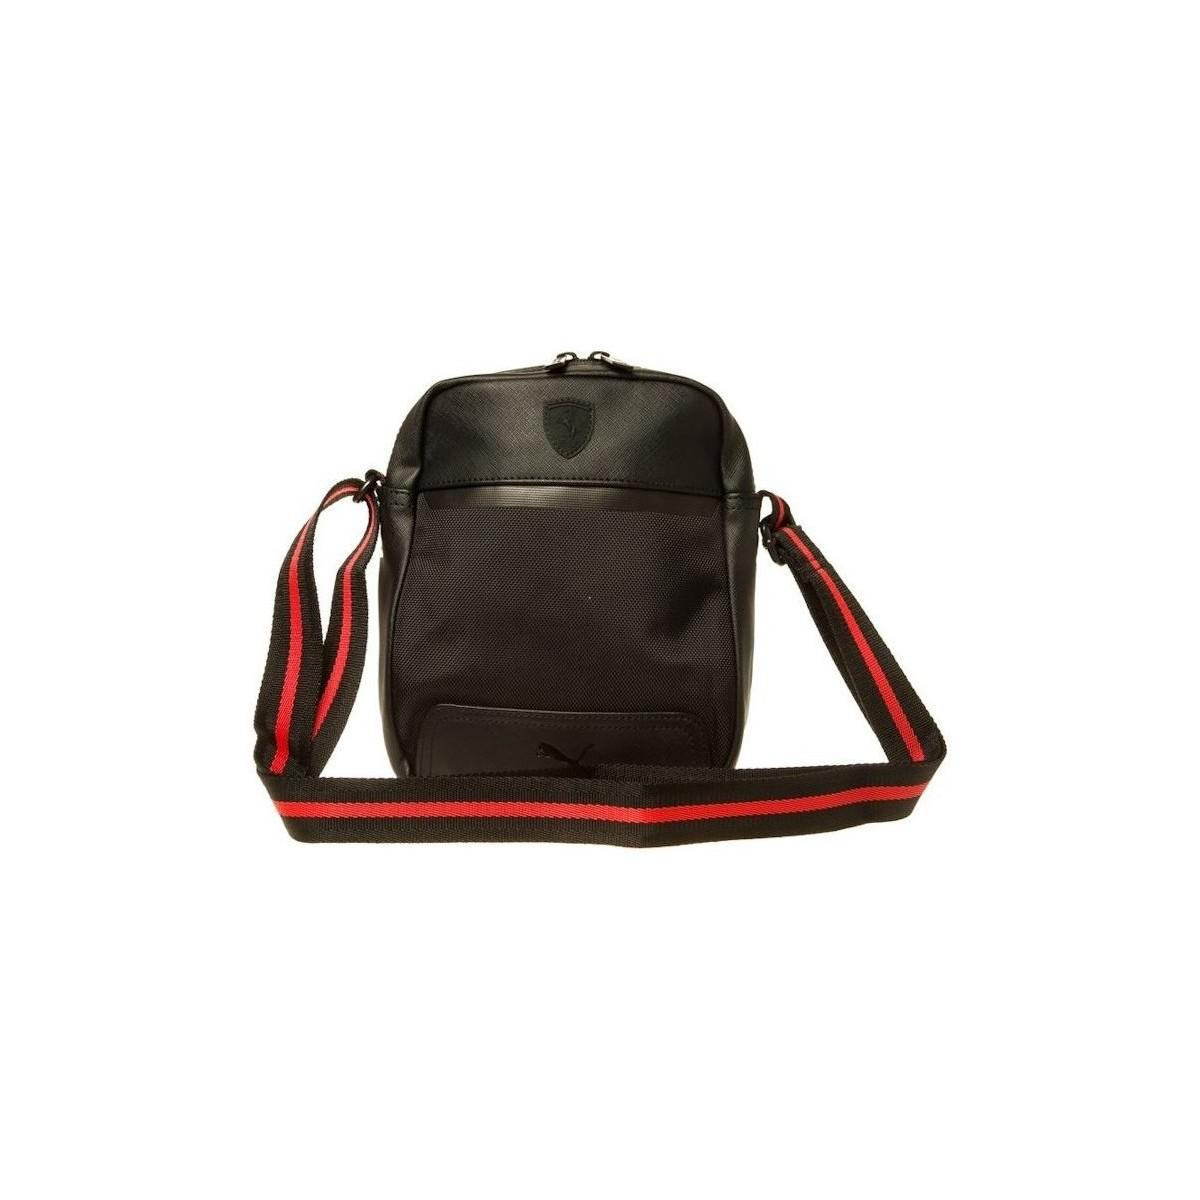 PUMA Ferrari Ls Portable Men s Shoulder Bag In Black in Black for ... e40d01bf5bbb0